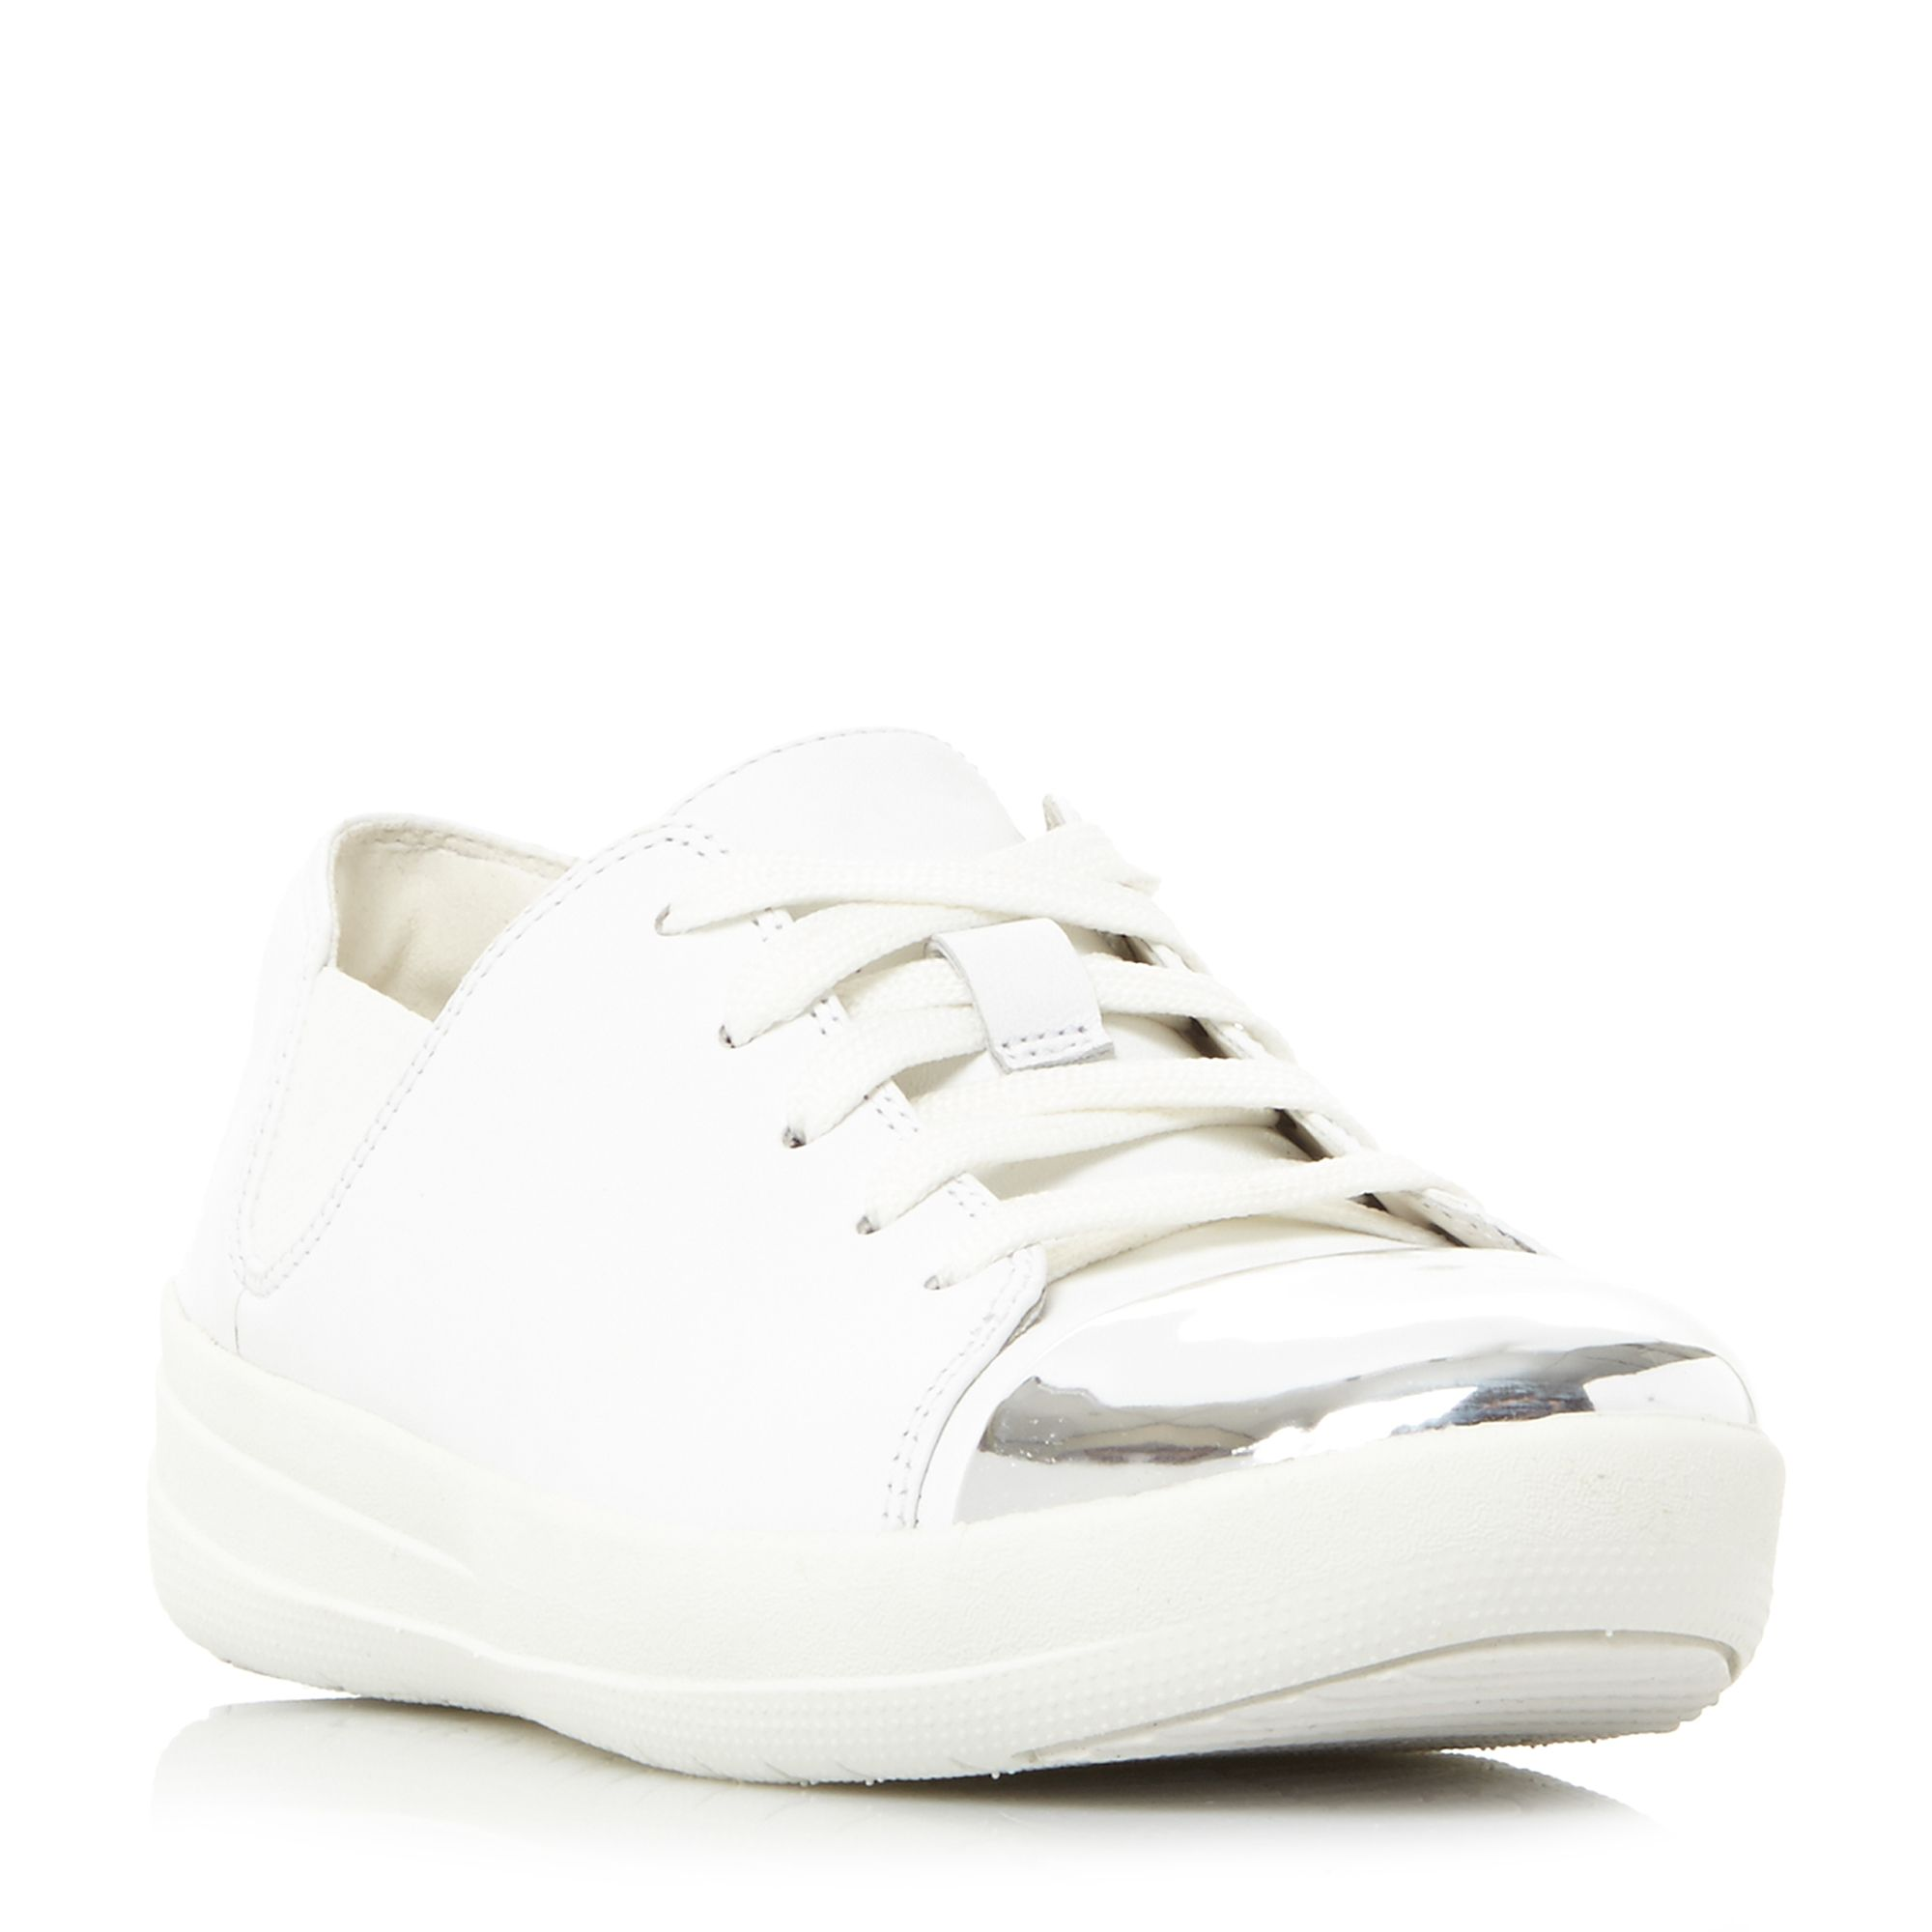 FitFlop F-Sporty Mirror Mirror Toe Trainers, White